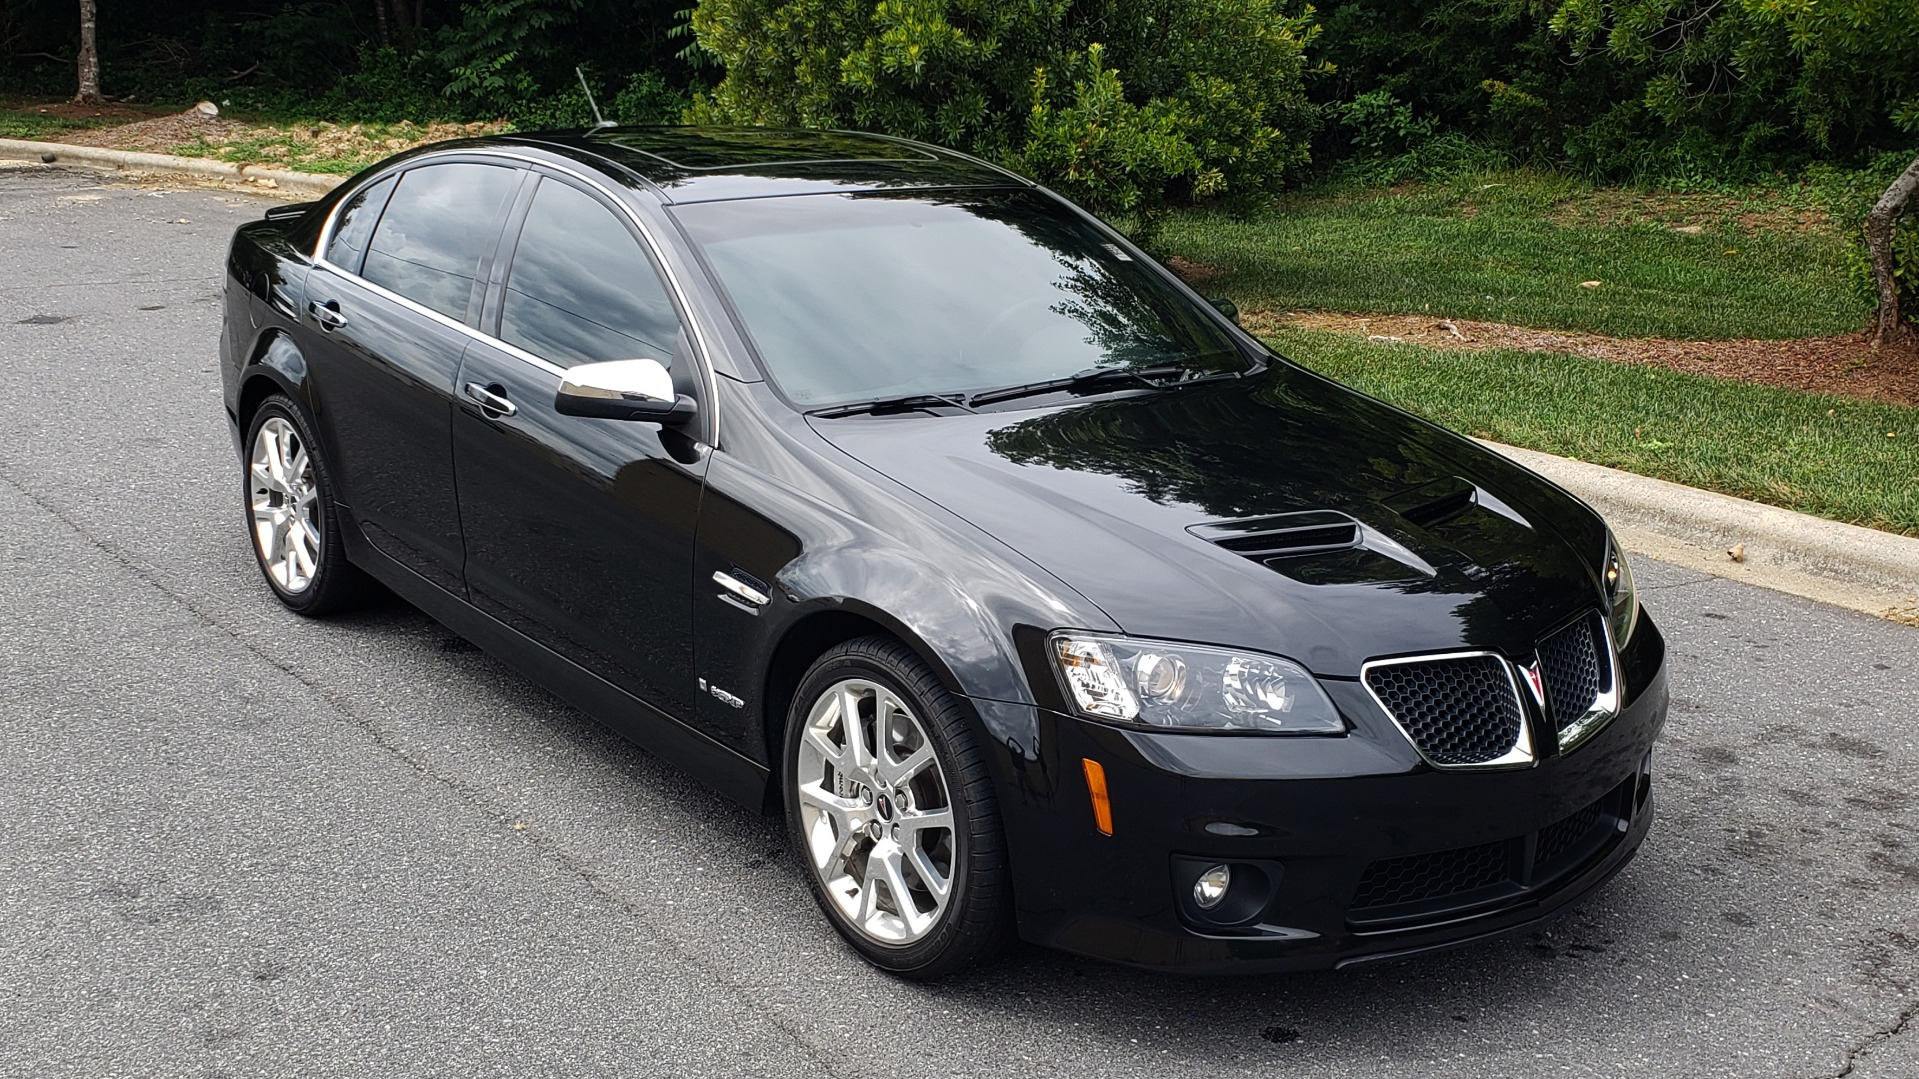 Used 2009 Pontiac G8 GXP / 6.2L LS3 V8 / 6-SPD AUTO / SUNROOF / 19IN WHEELS for sale Sold at Formula Imports in Charlotte NC 28227 7